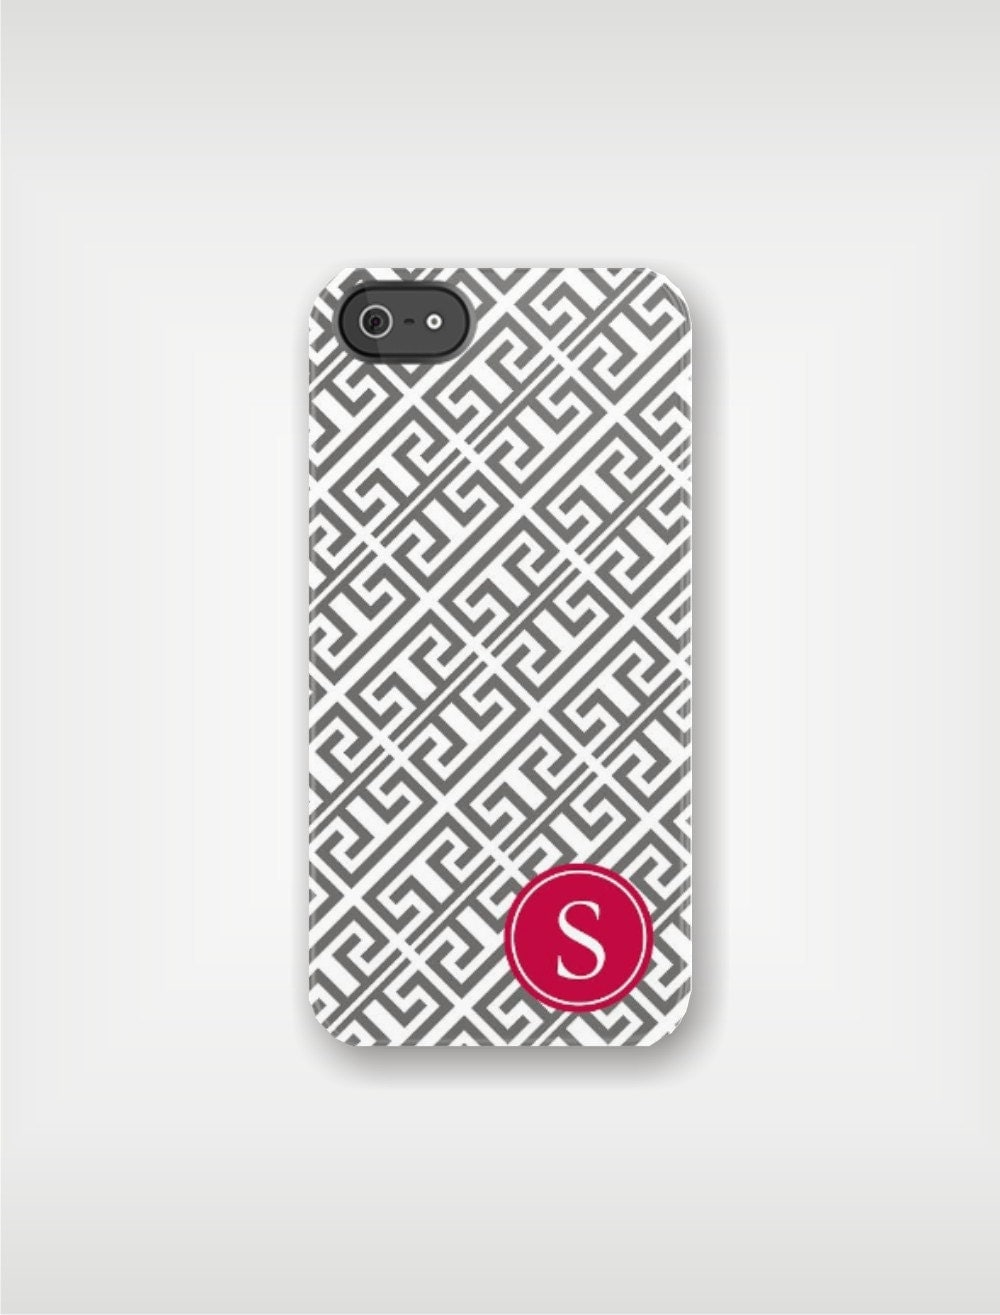 Personalized iPhone 5 Case 4 / 4S or 3G or Samsung - Greek Key - Custom Designed Cover - original design by a drop of golden sun